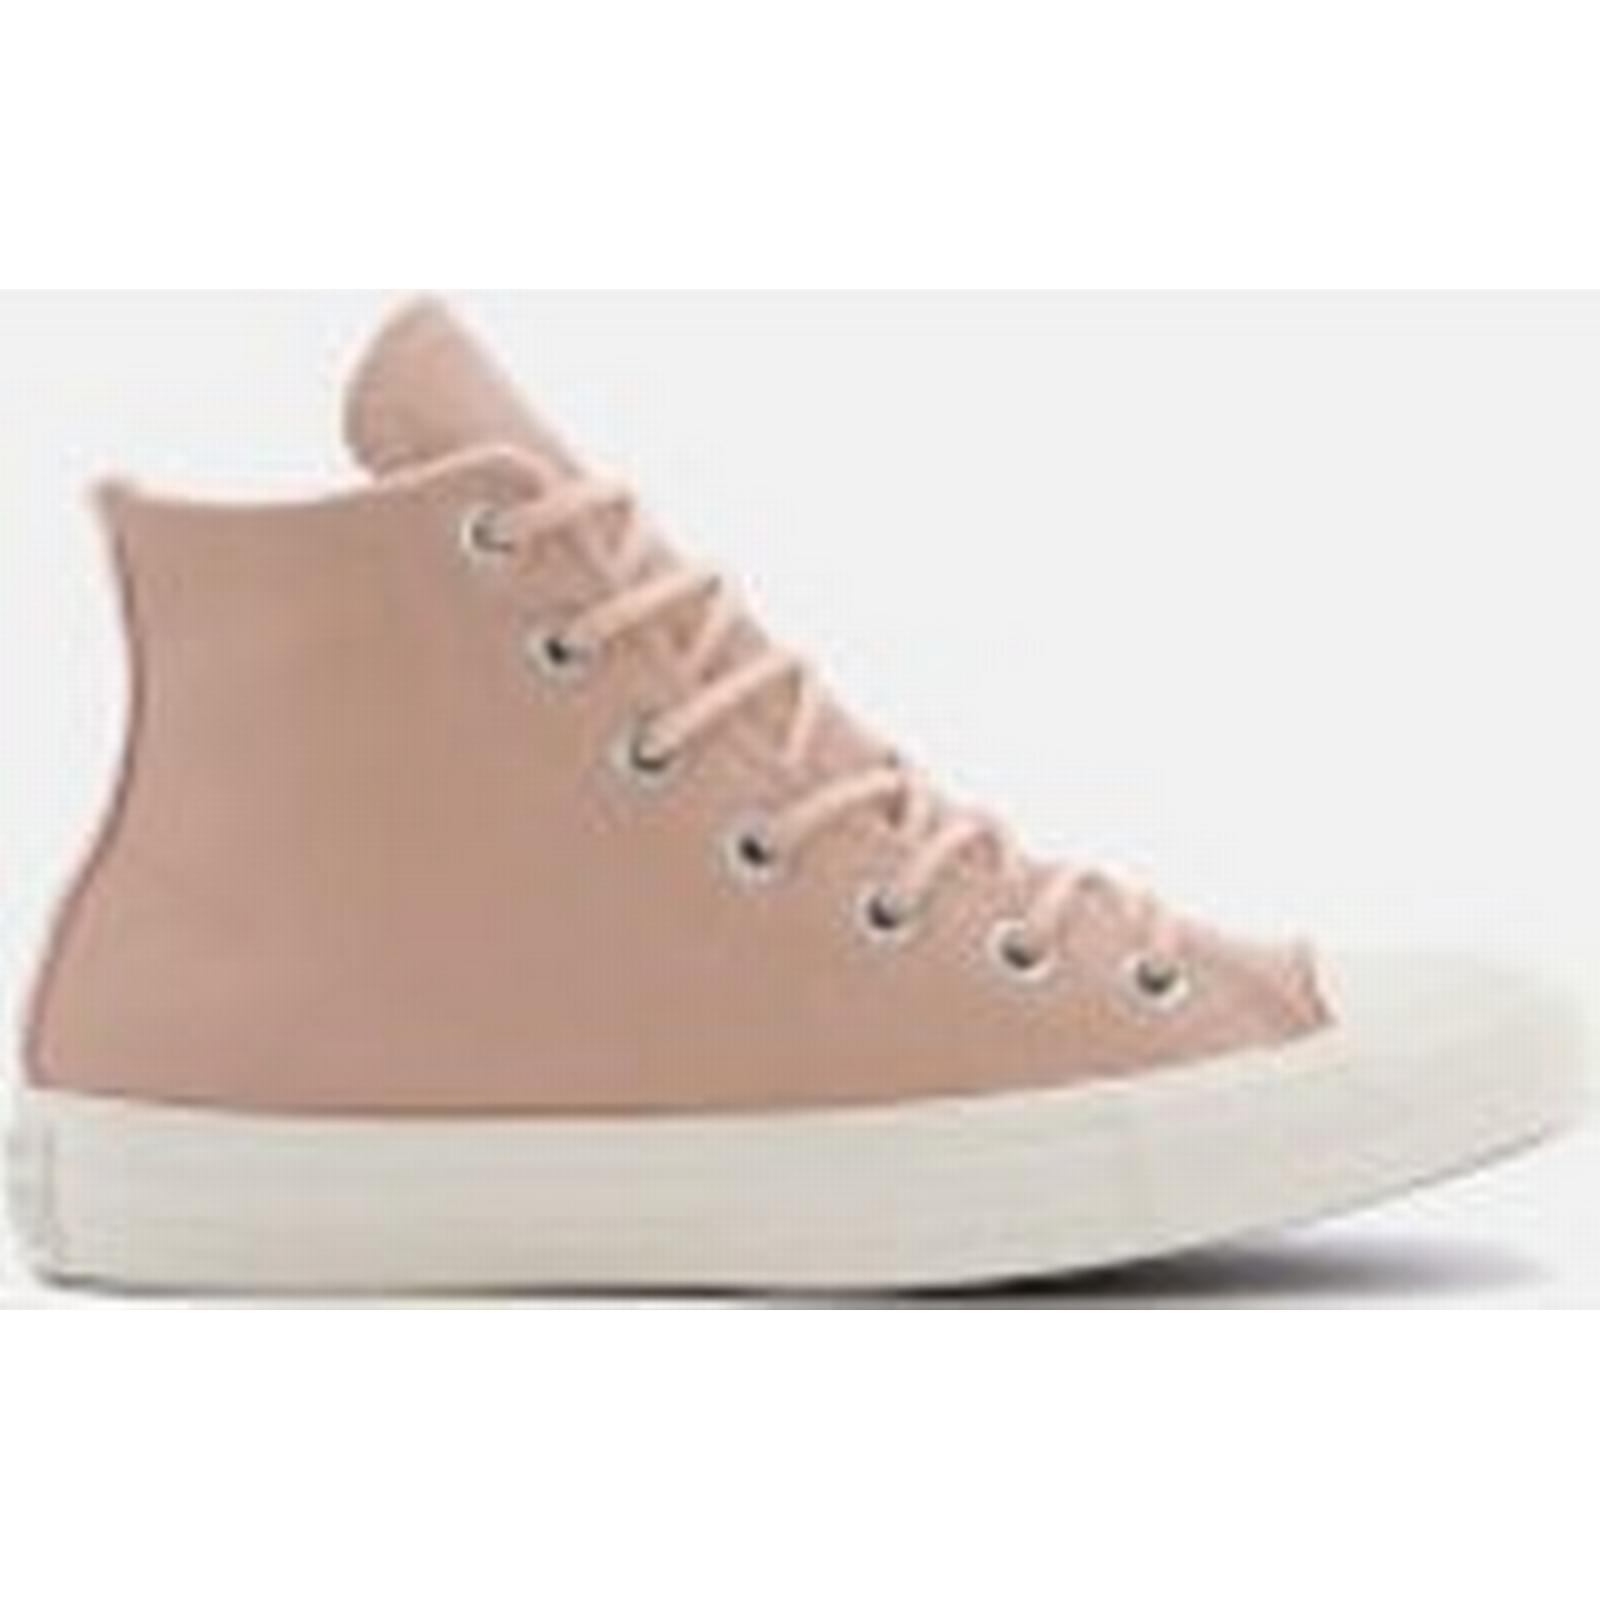 Converse Women's Chuck Taylor - All Star Hi-Top Trainers - Taylor Dusk Pink/Dusk Pink.Egret - UK 4 - Pink 040e0b